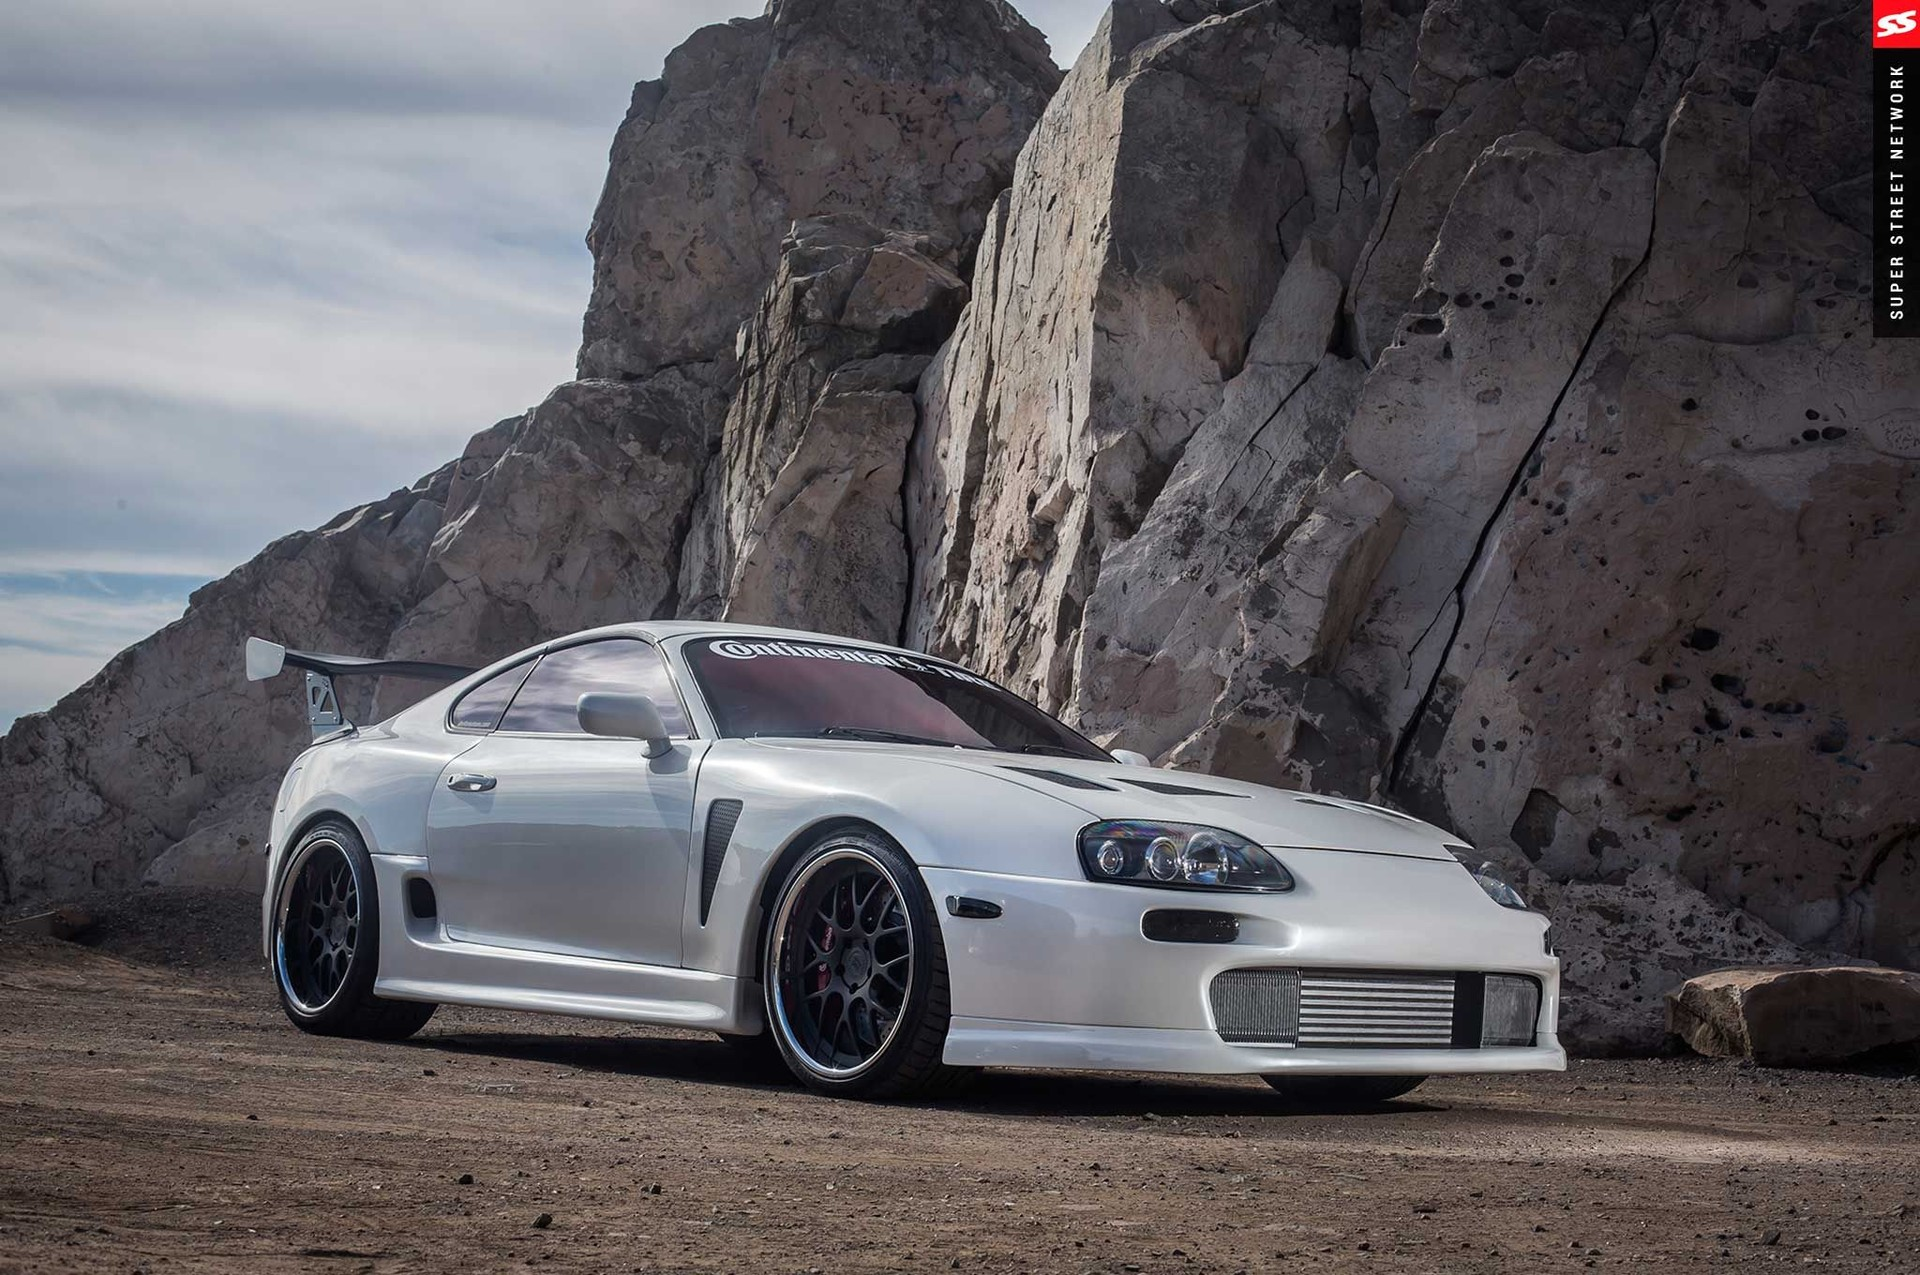 Andre camacho design 1994 toyota supra trd widebody kit